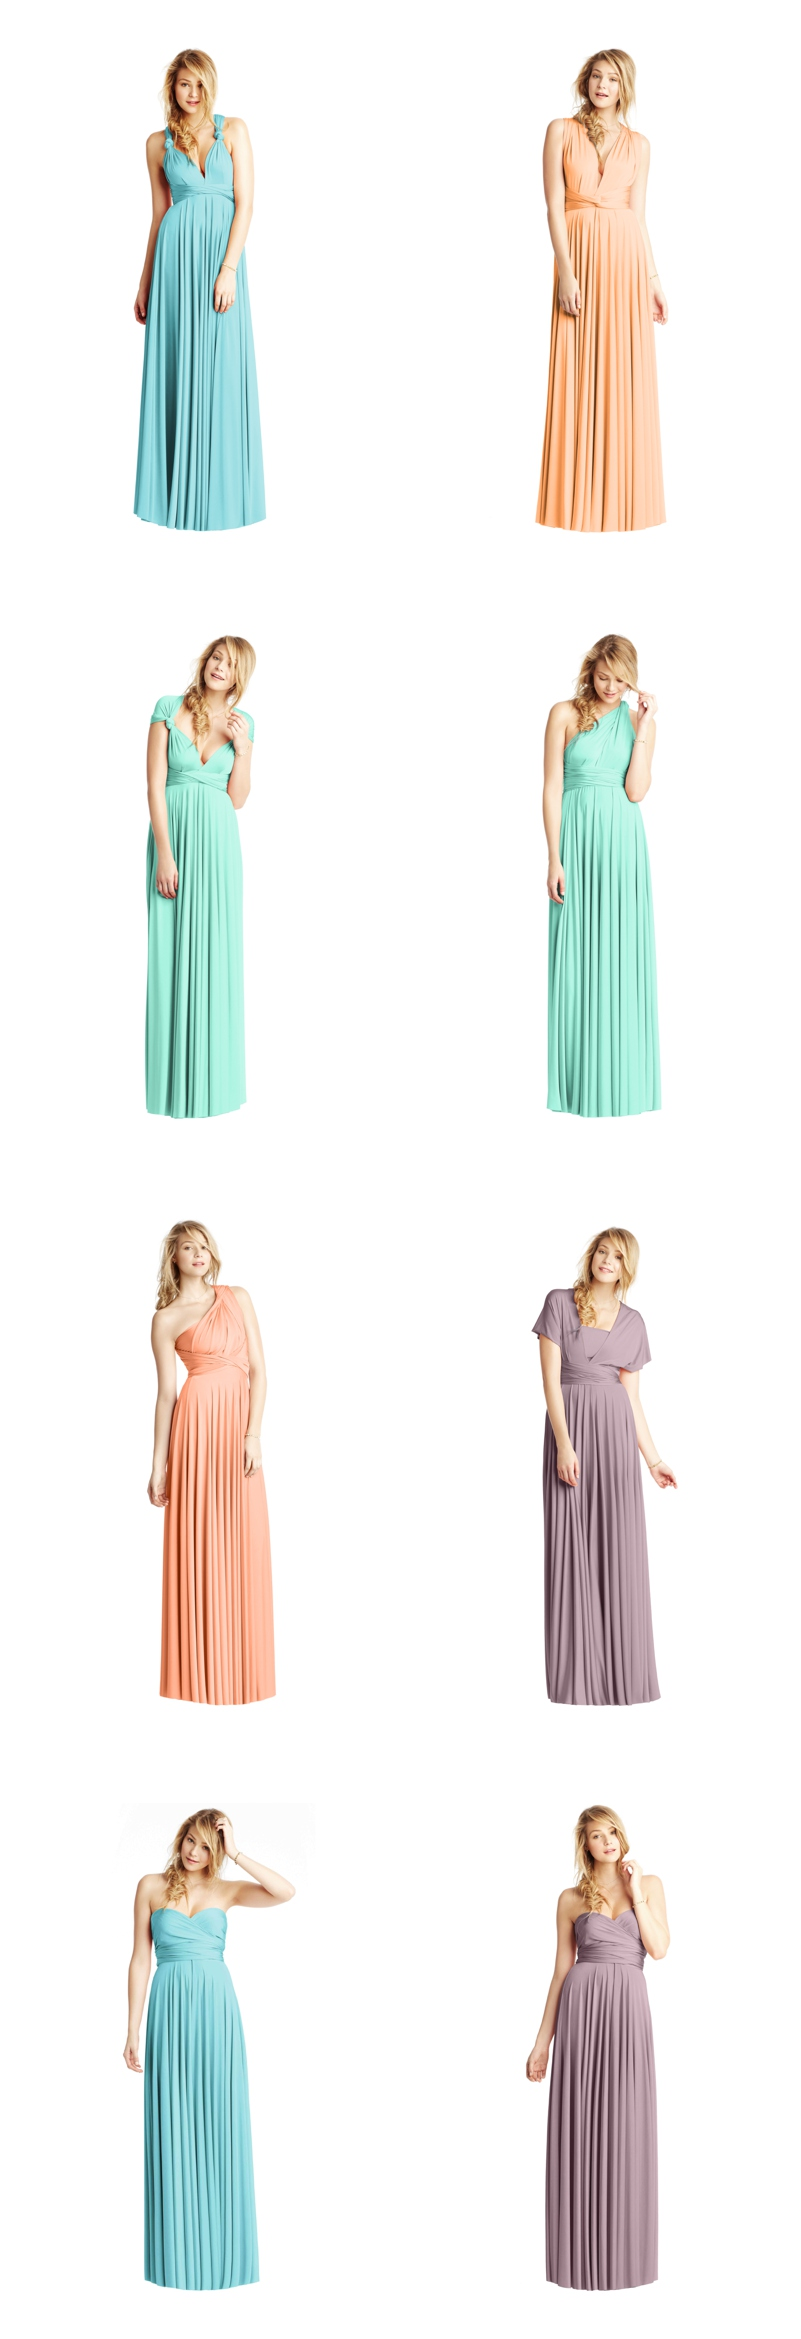 ATwobirds bridesmaids dresses new pastel shades peach mint heather and duck egg_0536